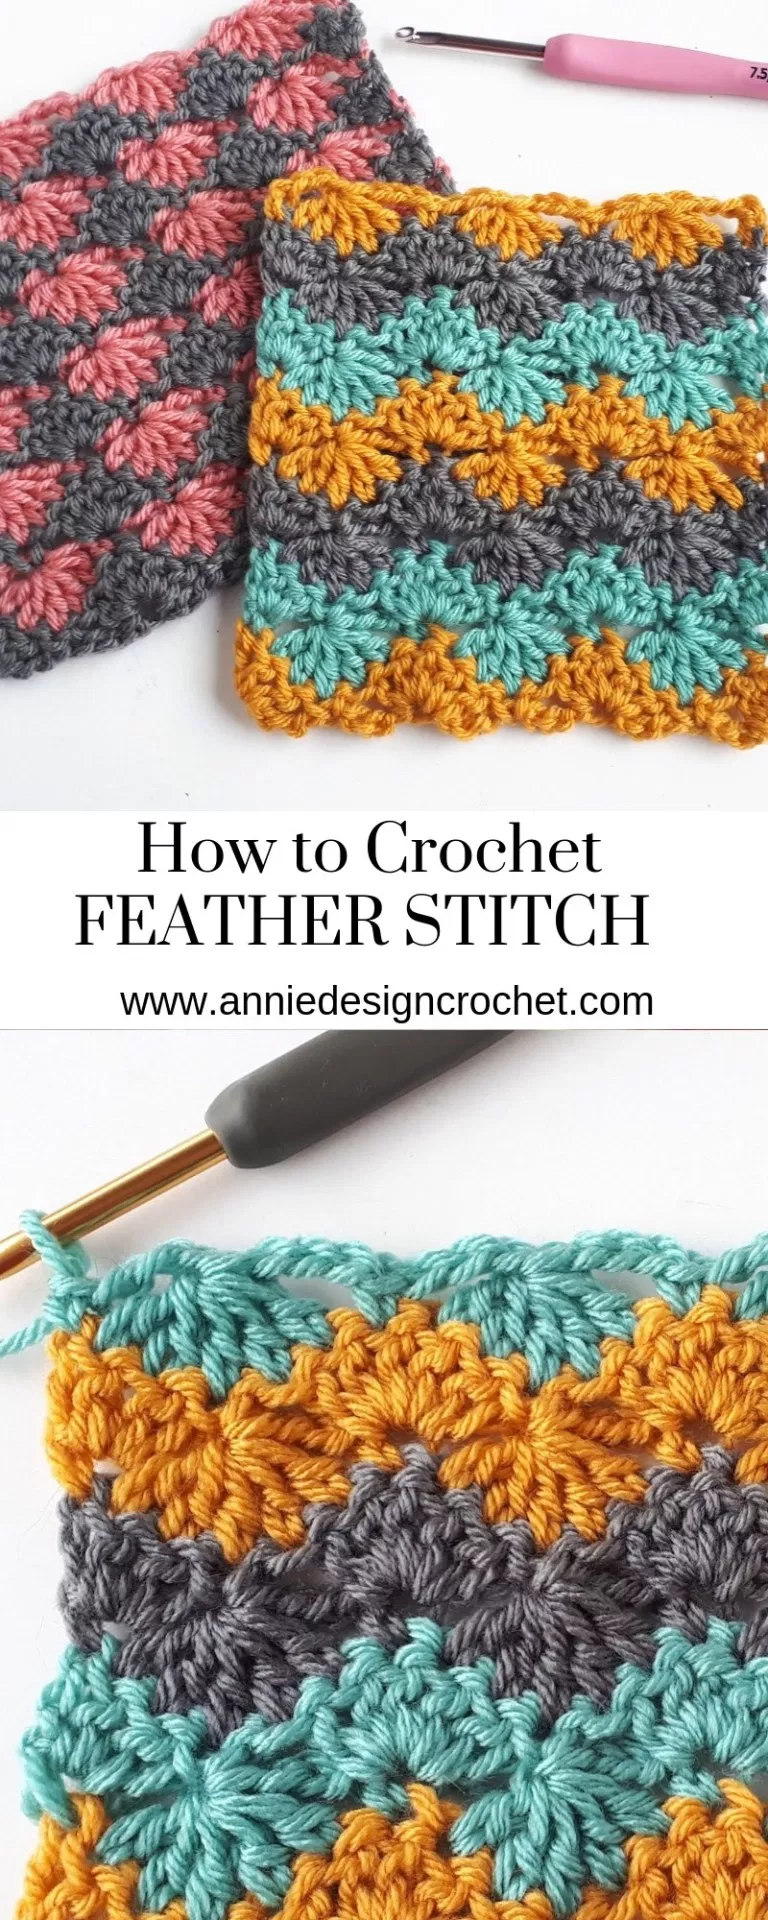 Feather Stitch Tutorial – Annie Design Crochet #crochet #crochettutorial